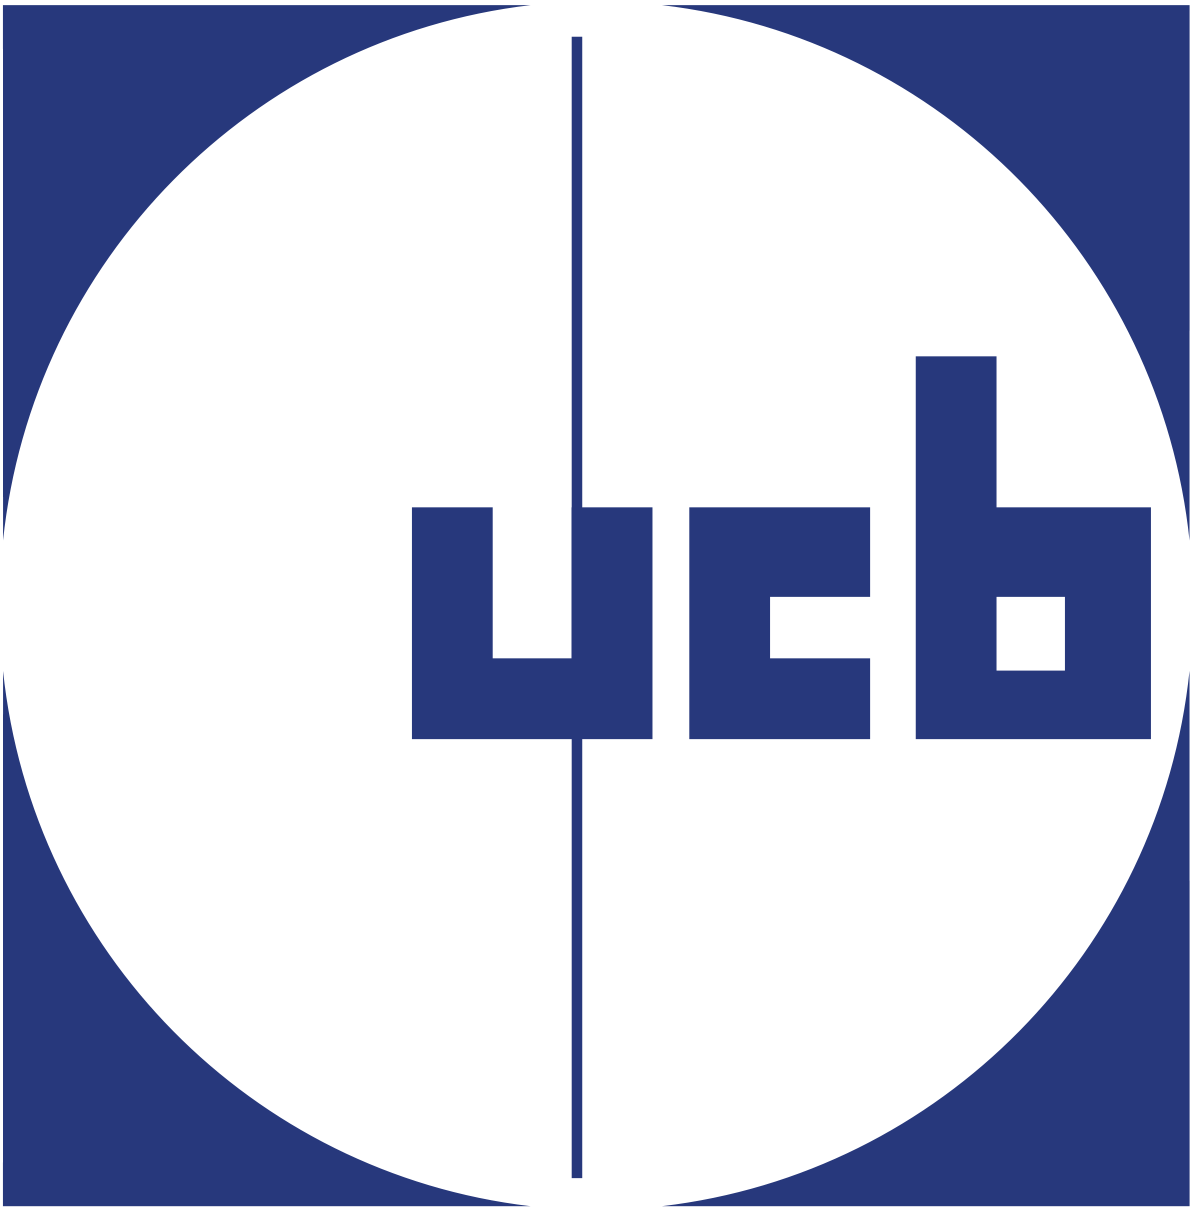 UCB logo - Assisting with Consolidation